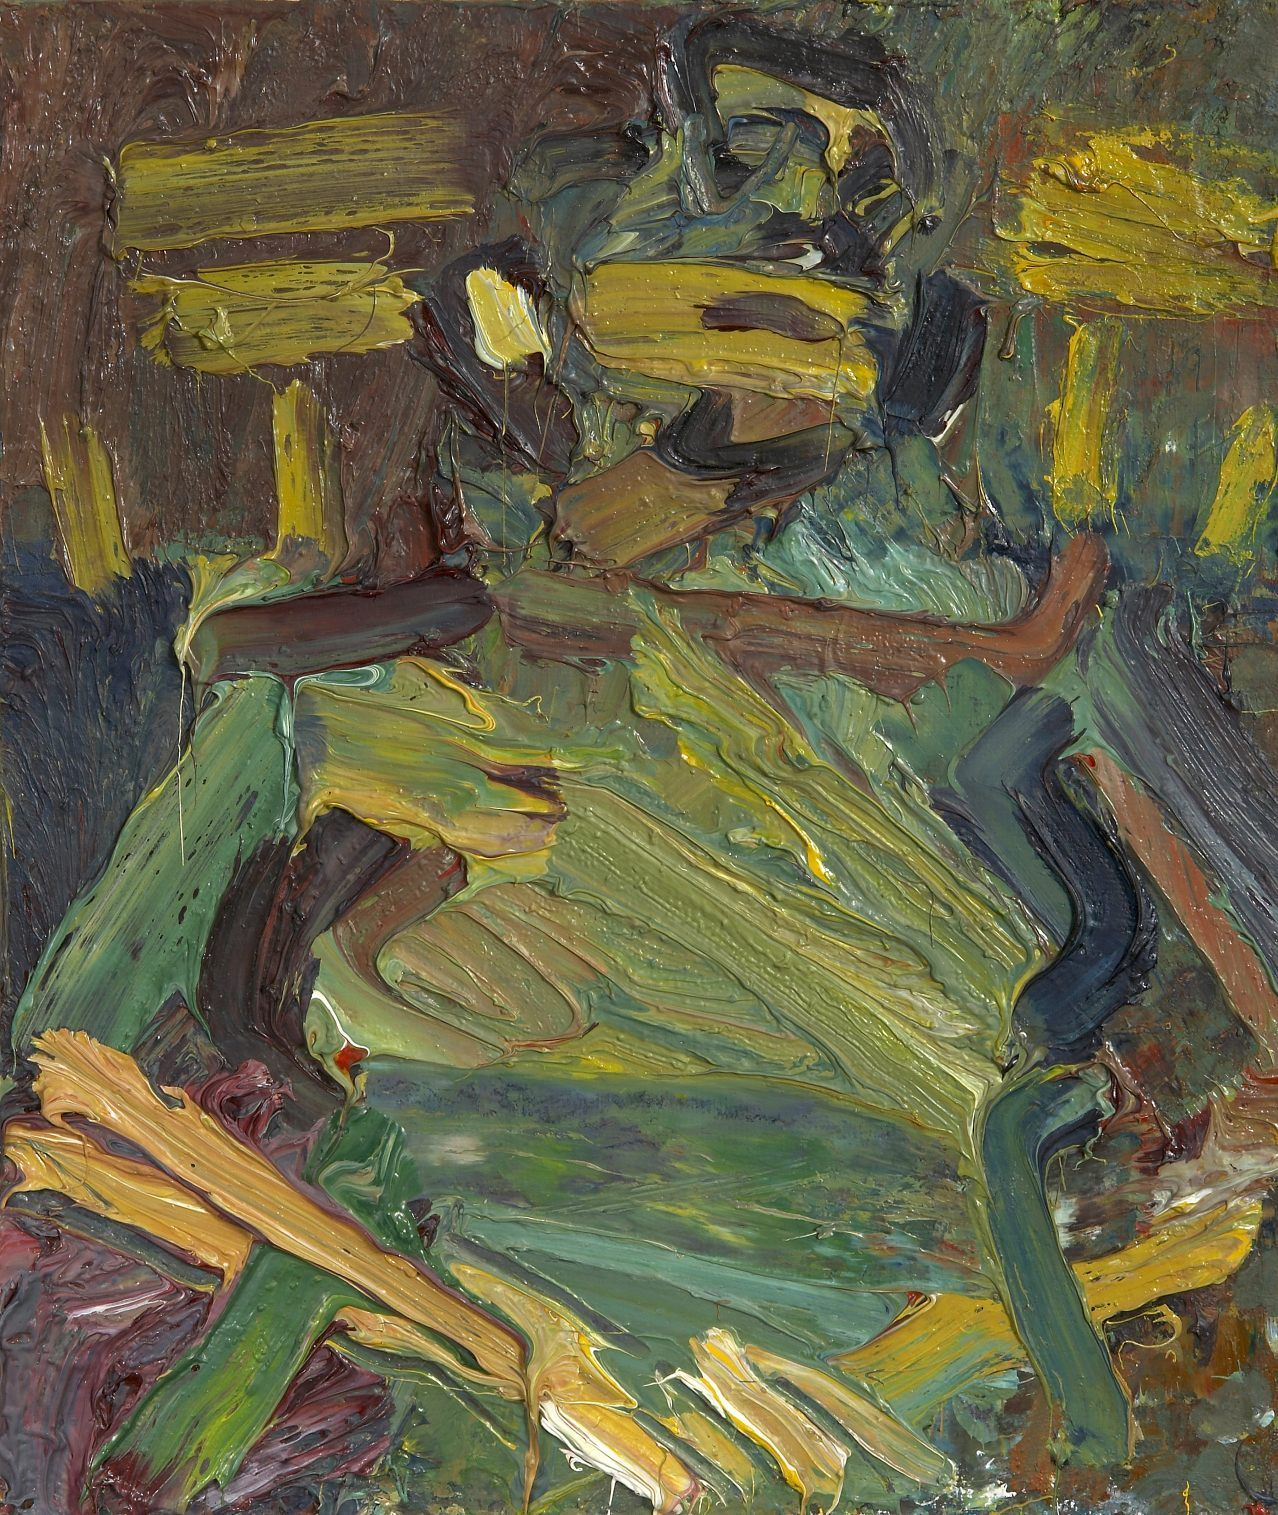 A biography of frank auerbach